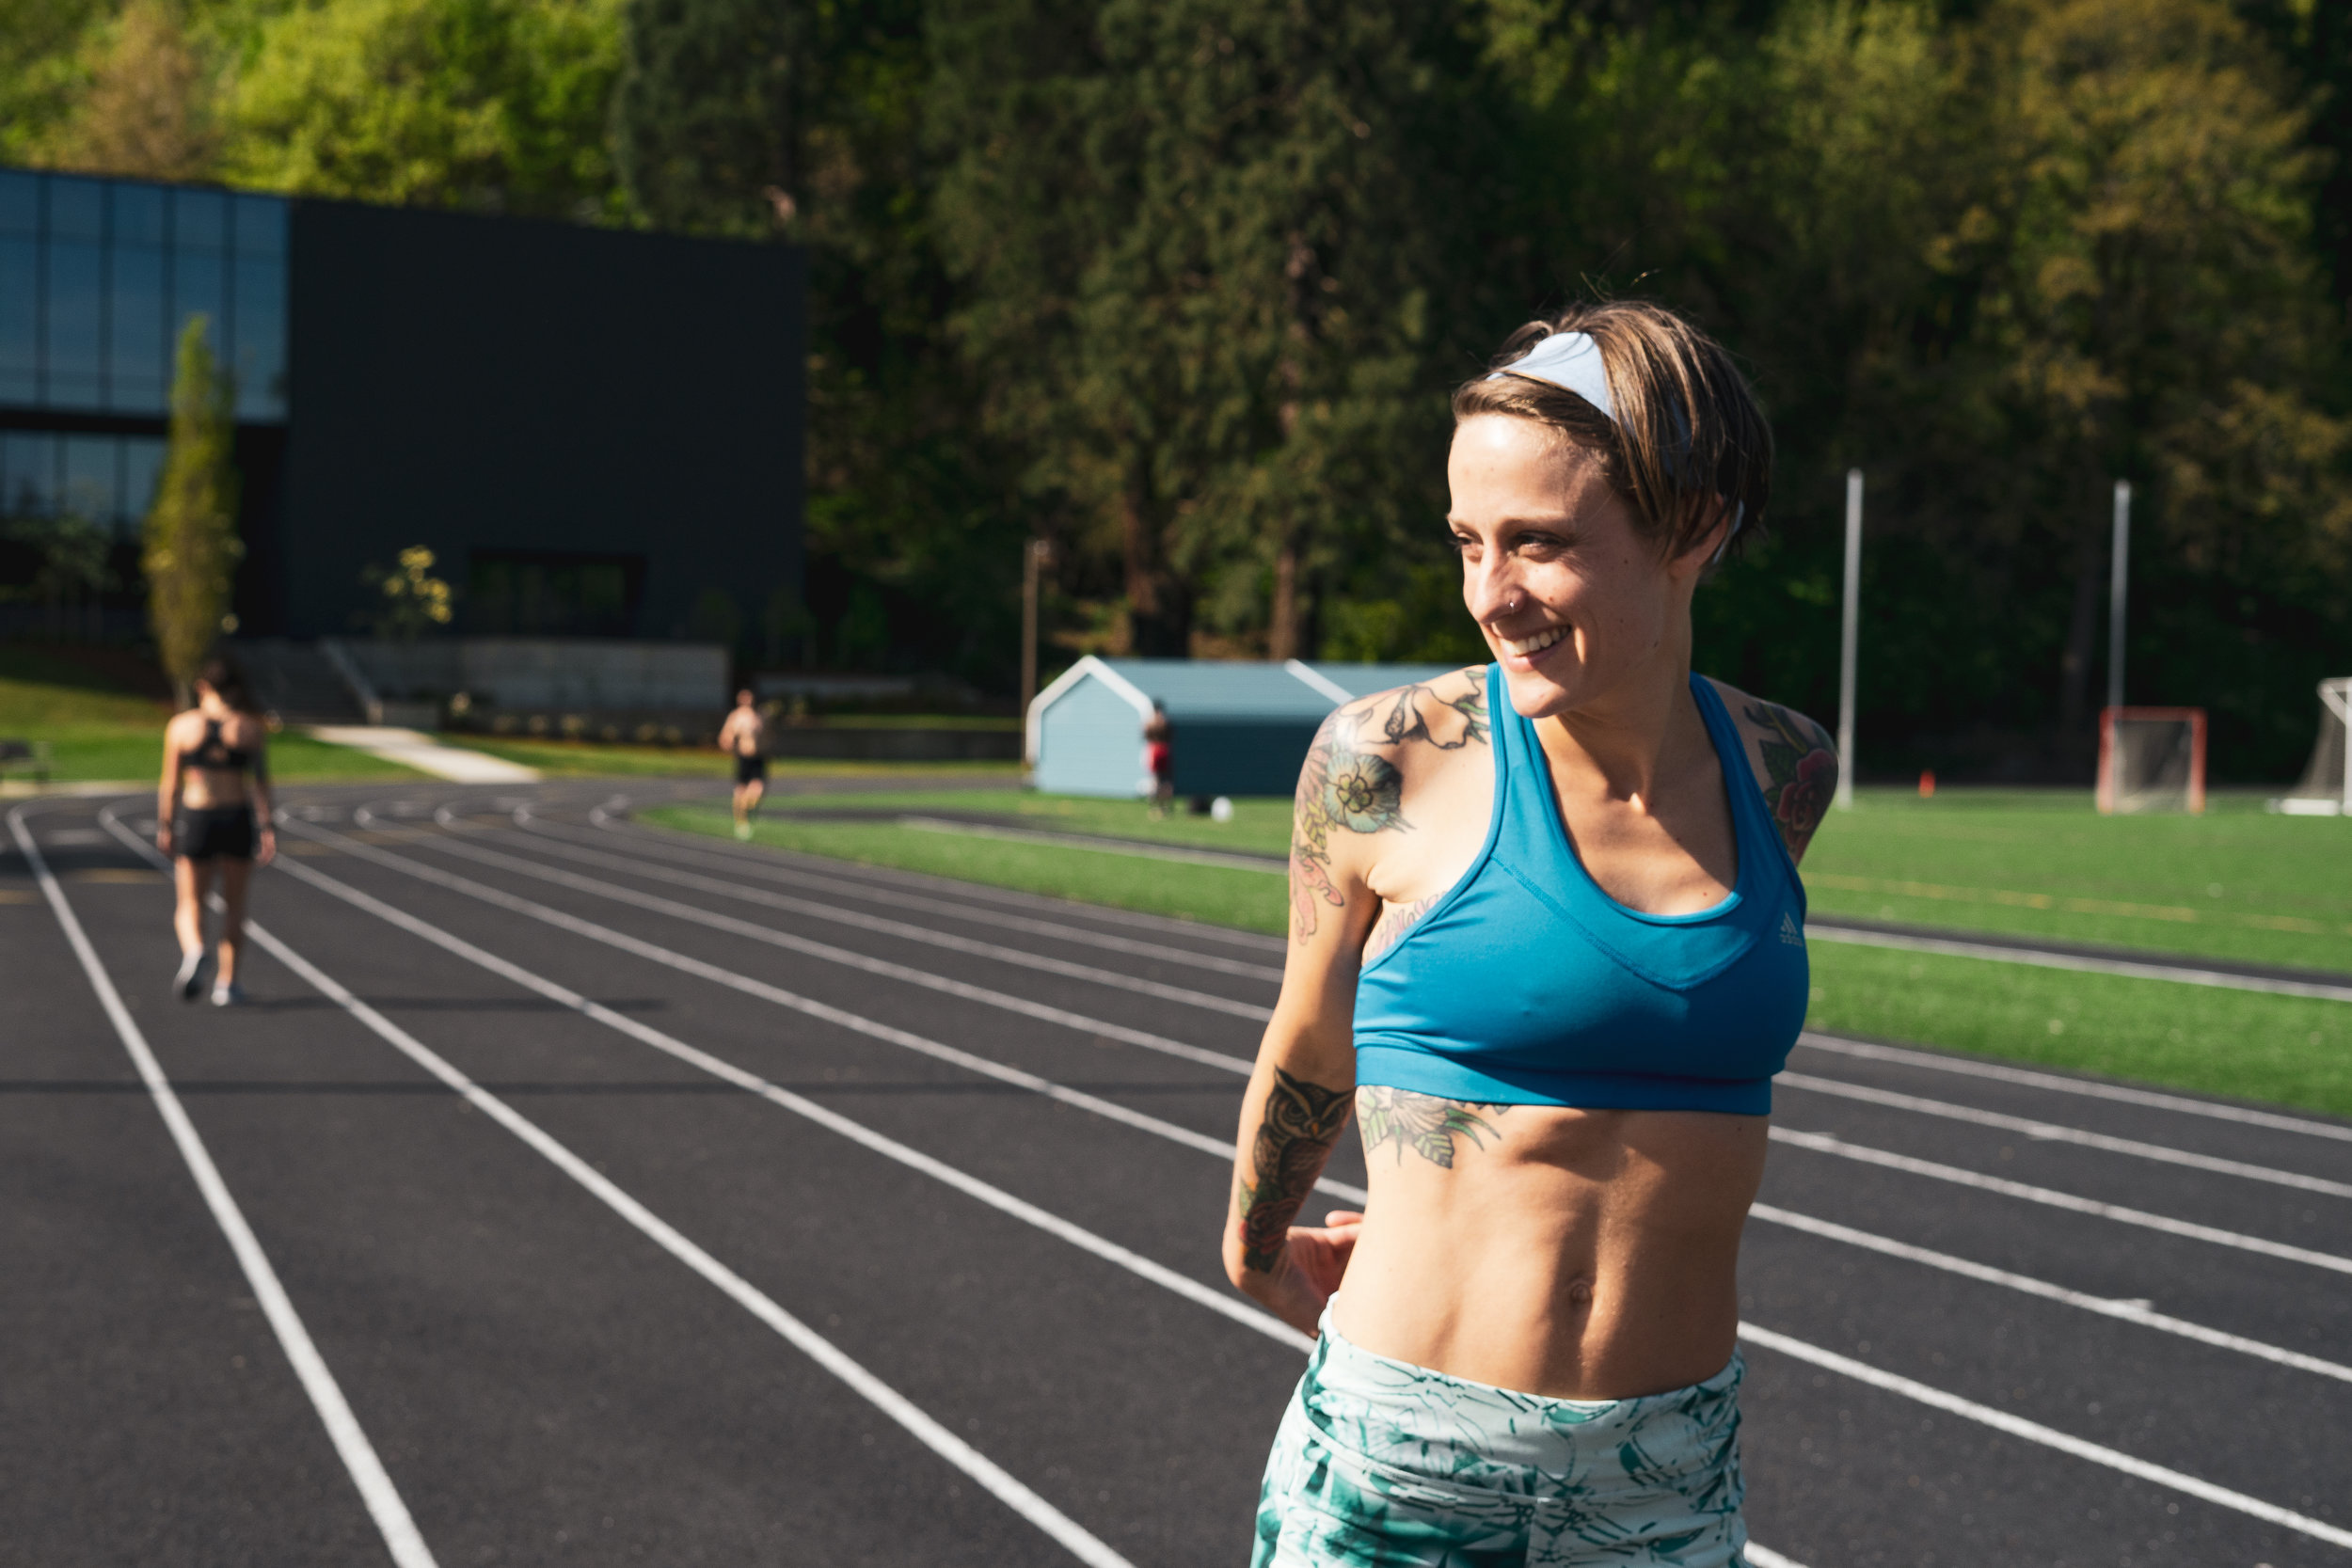 Former NAIA national Champion in the 10,000m and 5,000m, Karlee Coffey.